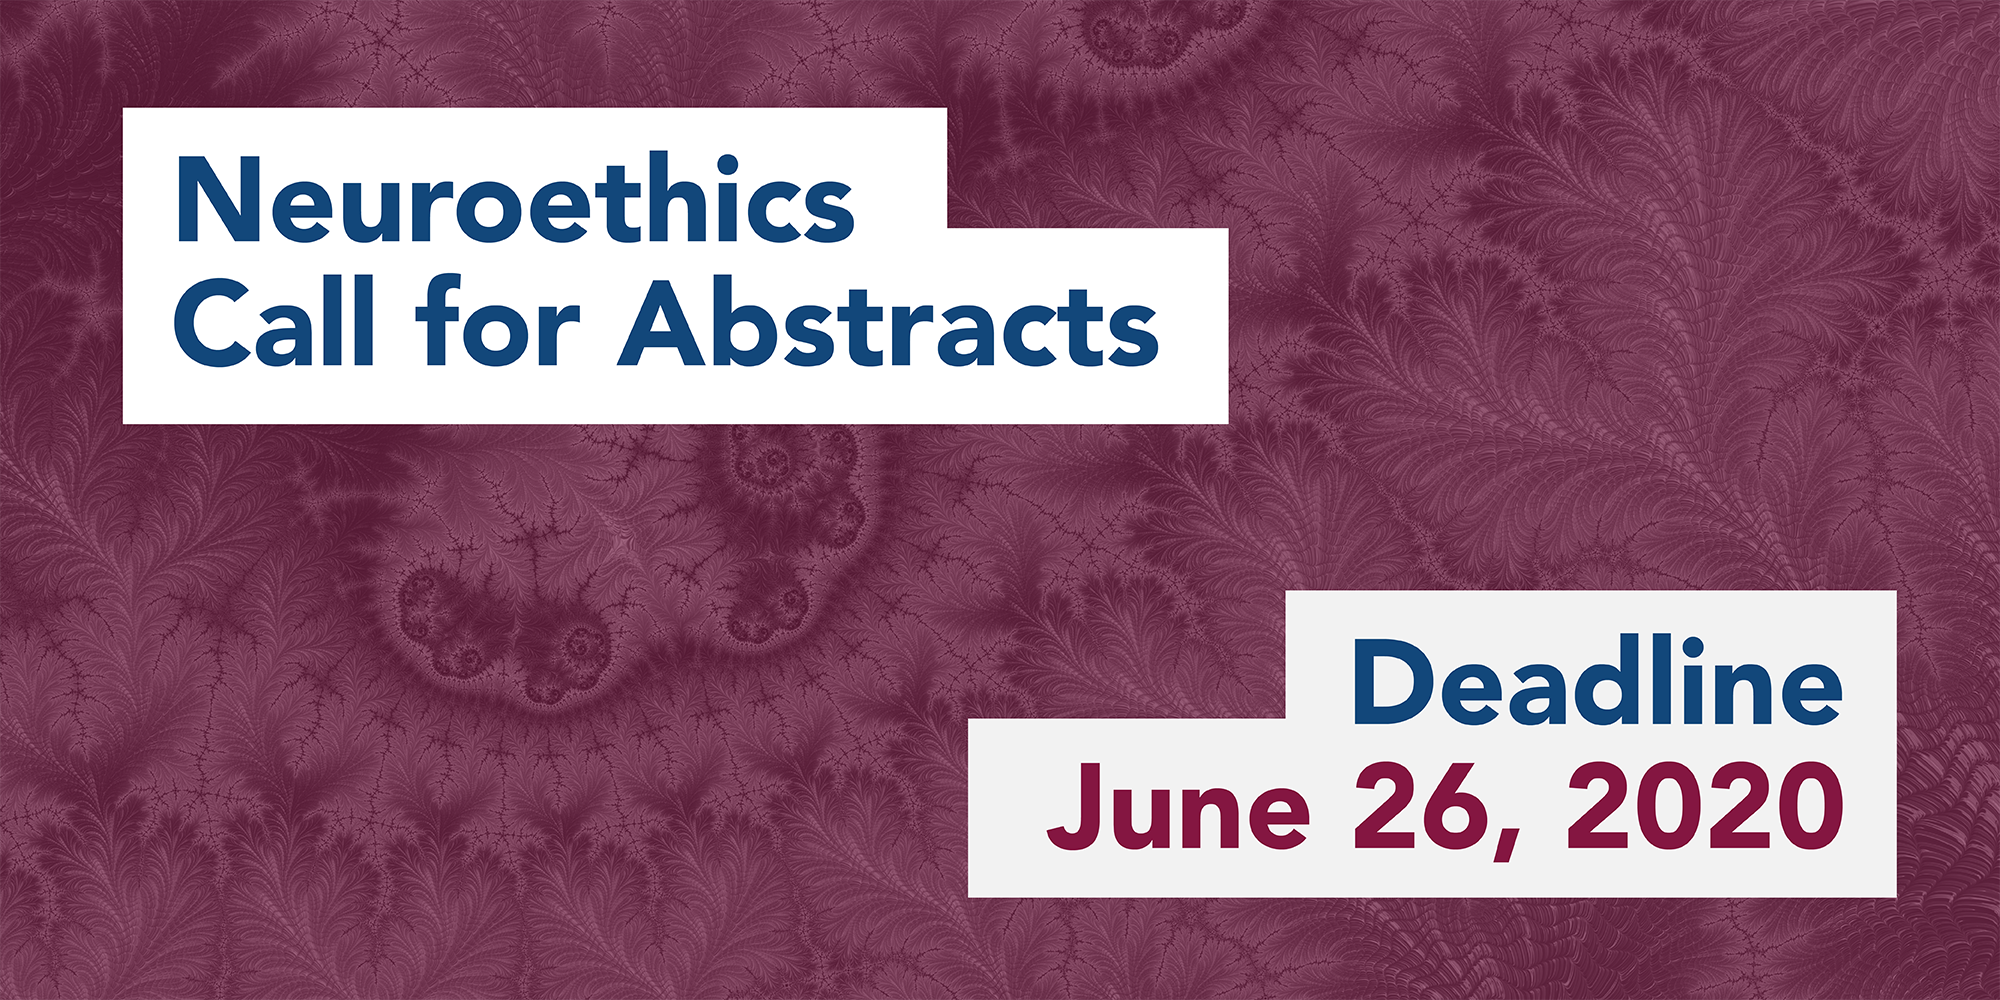 Call for abstracts deadline: June 26, 2020